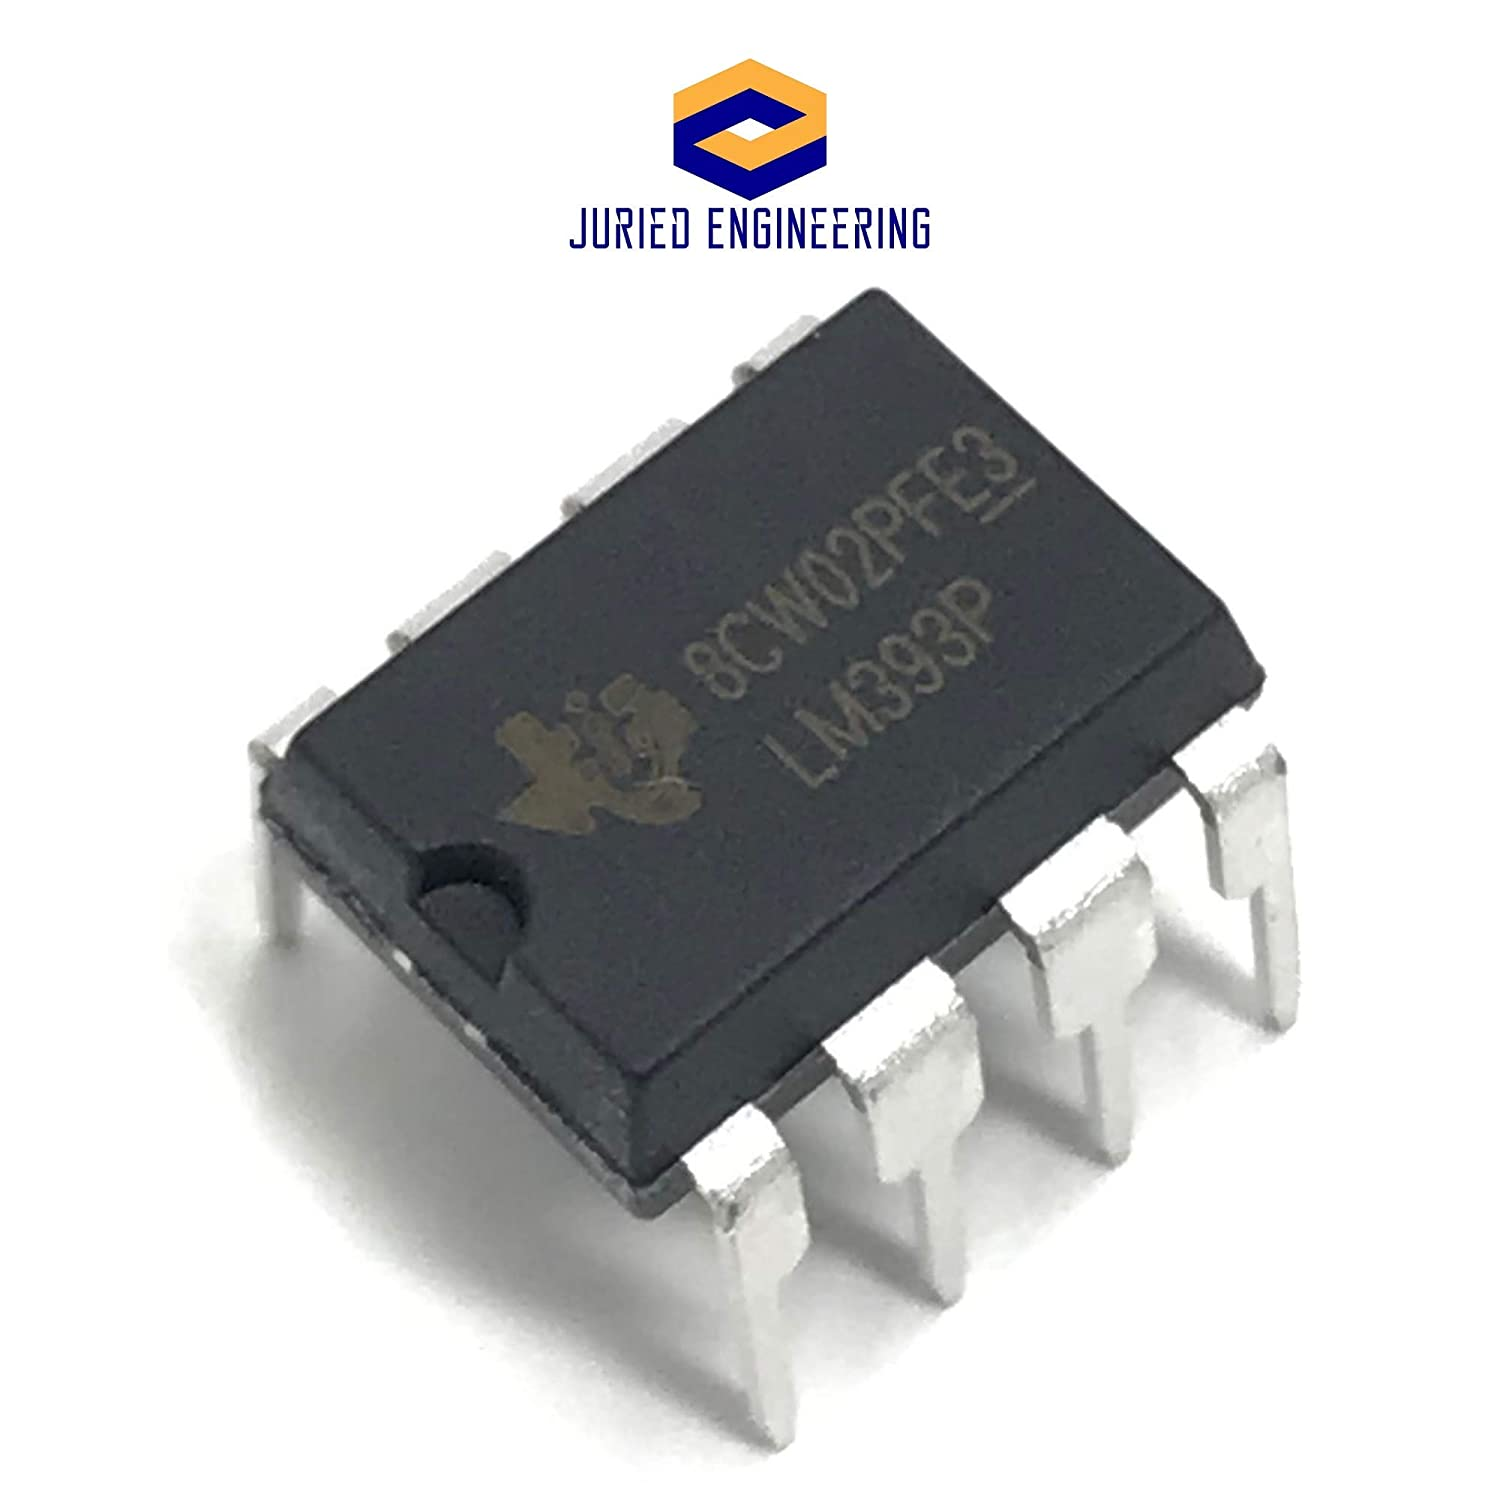 LM393 IC Low Power Dual Voltage Comparator Texas Instruments DIP8 LM393P LM393N